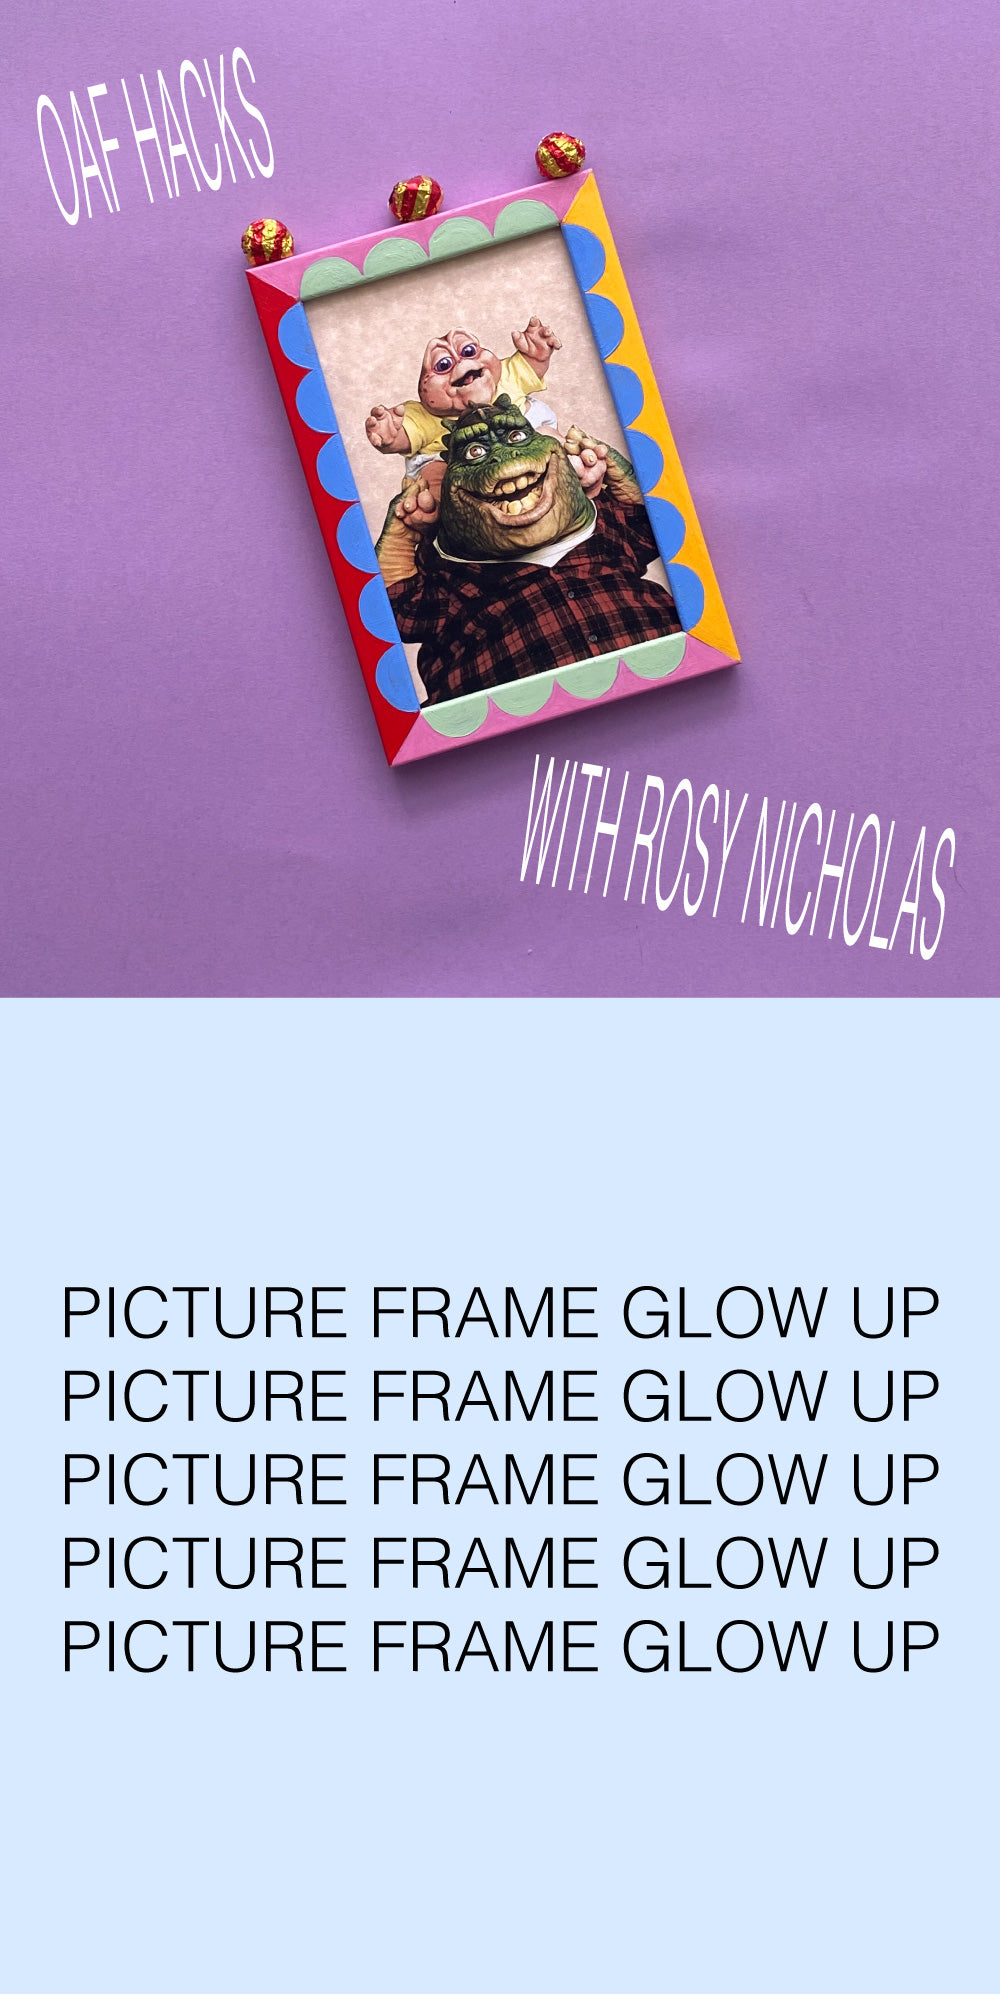 Oaf Hacks: Picture Frame Glow Up With Rosy Nicholas